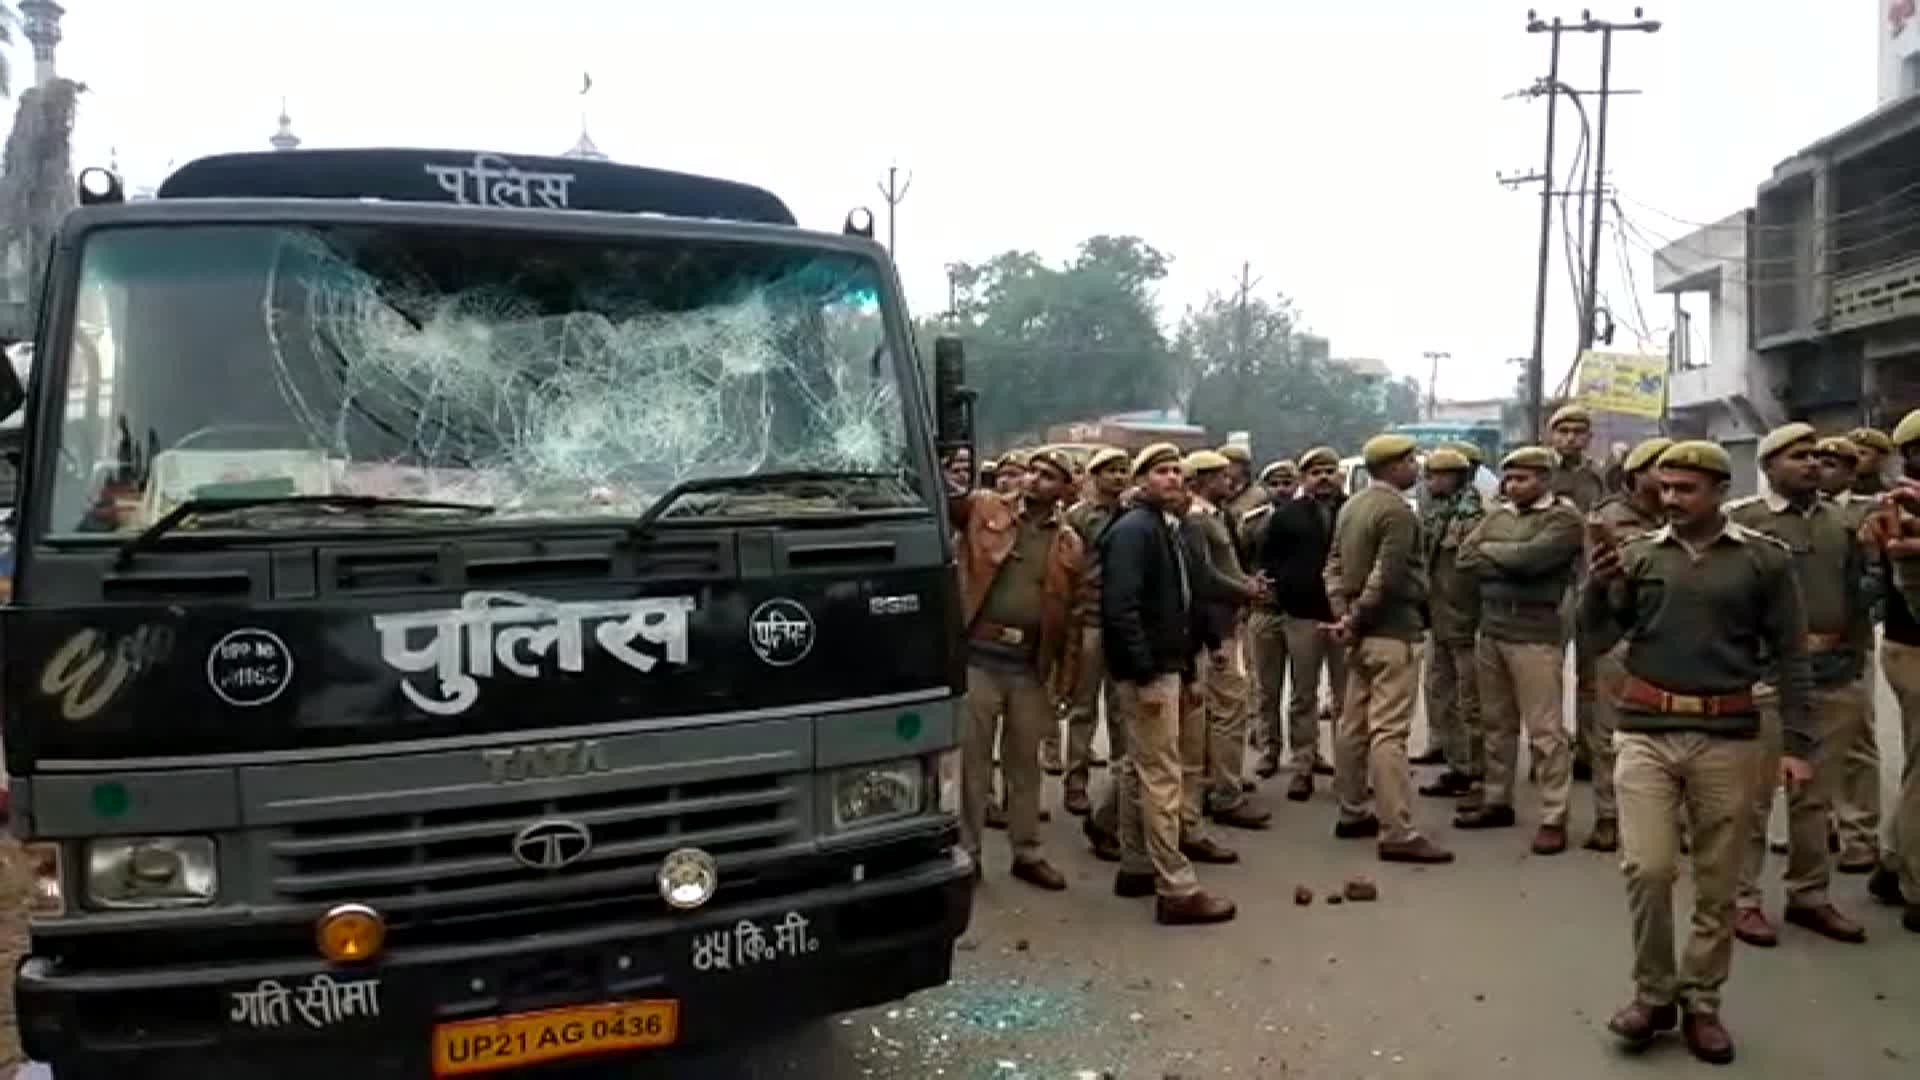 A damaged vehicle is seen in Sambhal.